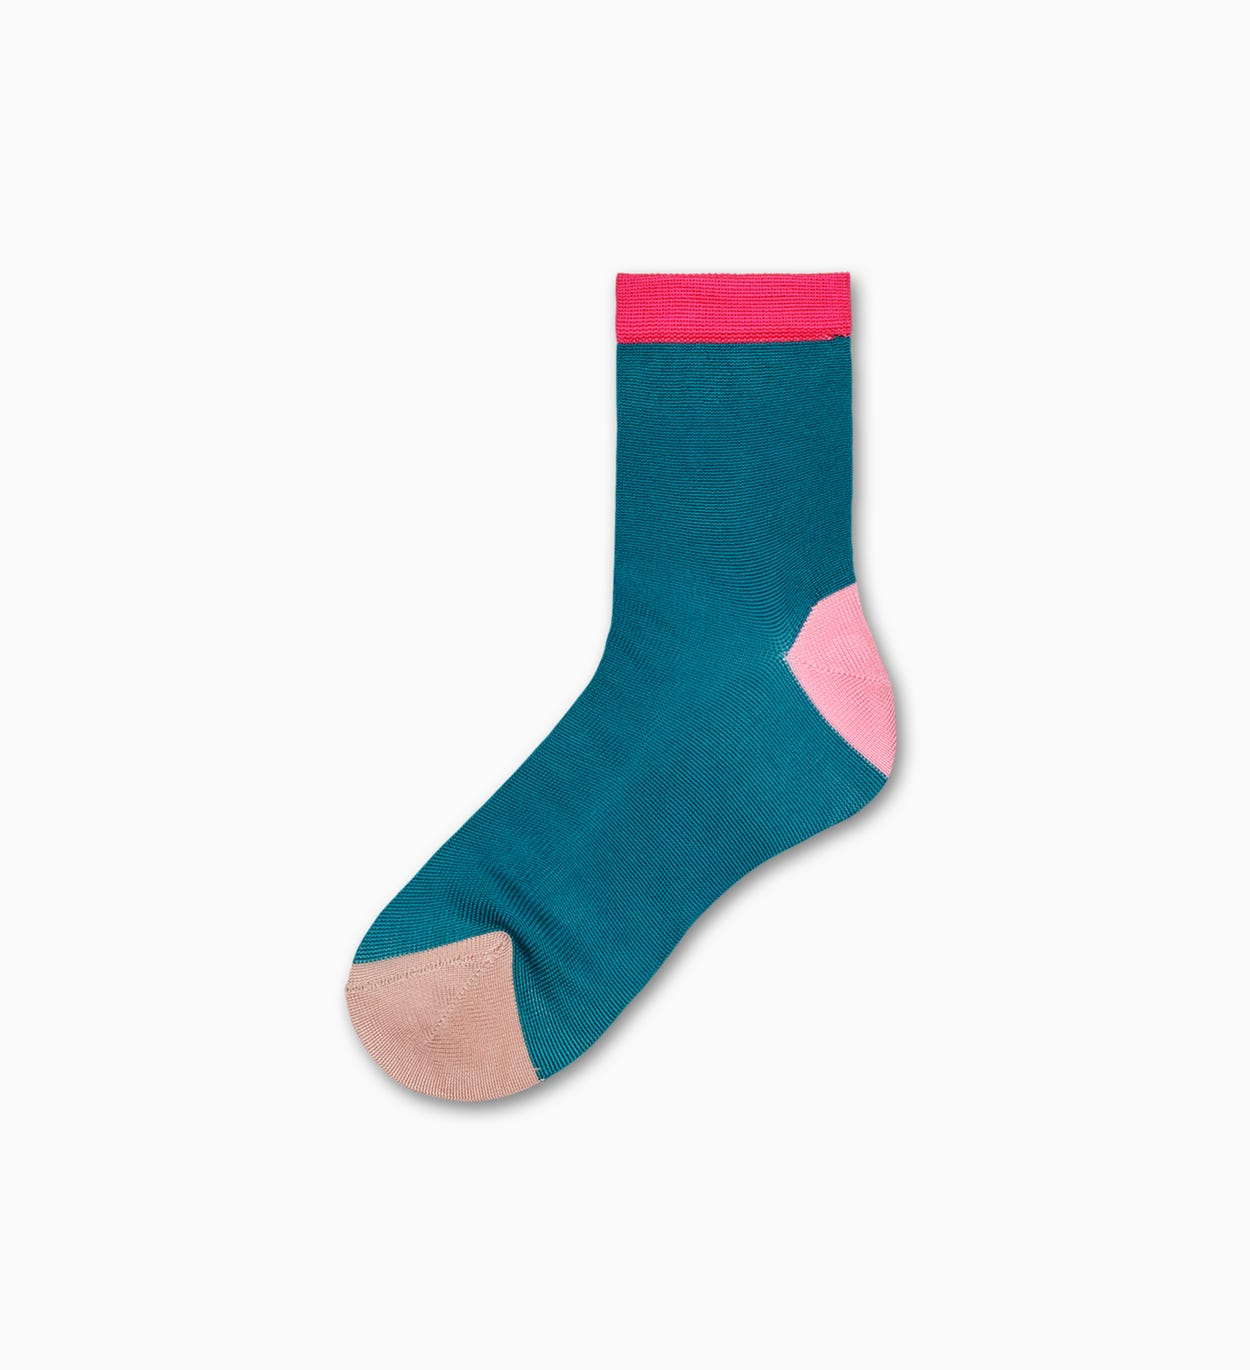 Socquettes Turquoise: Grace | Hysteria by Happy Socks